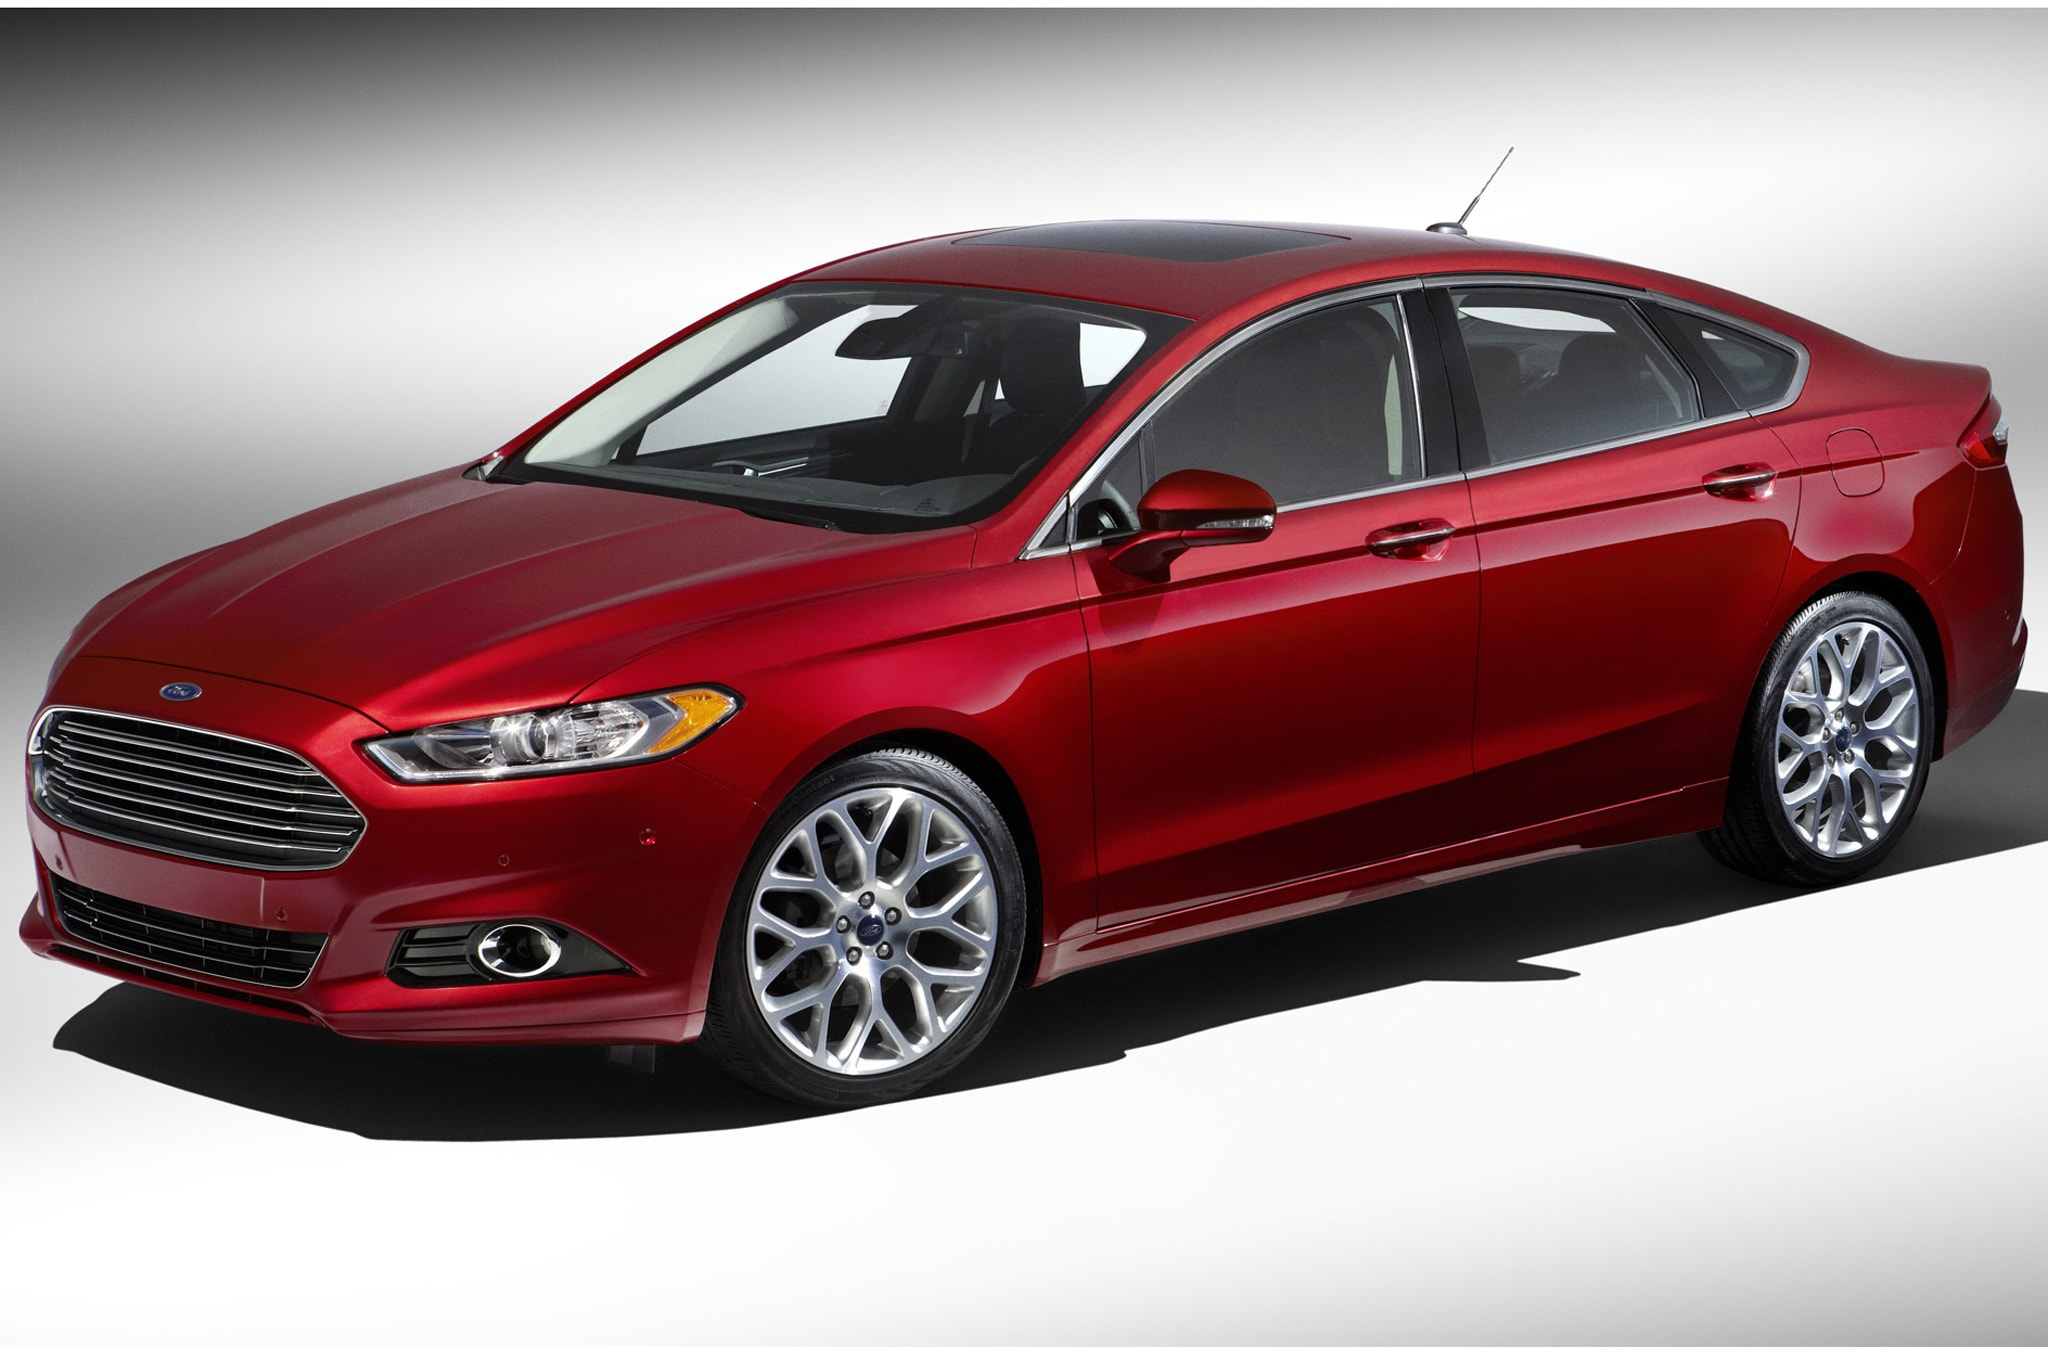 2013 Ford Fusion HD pictures